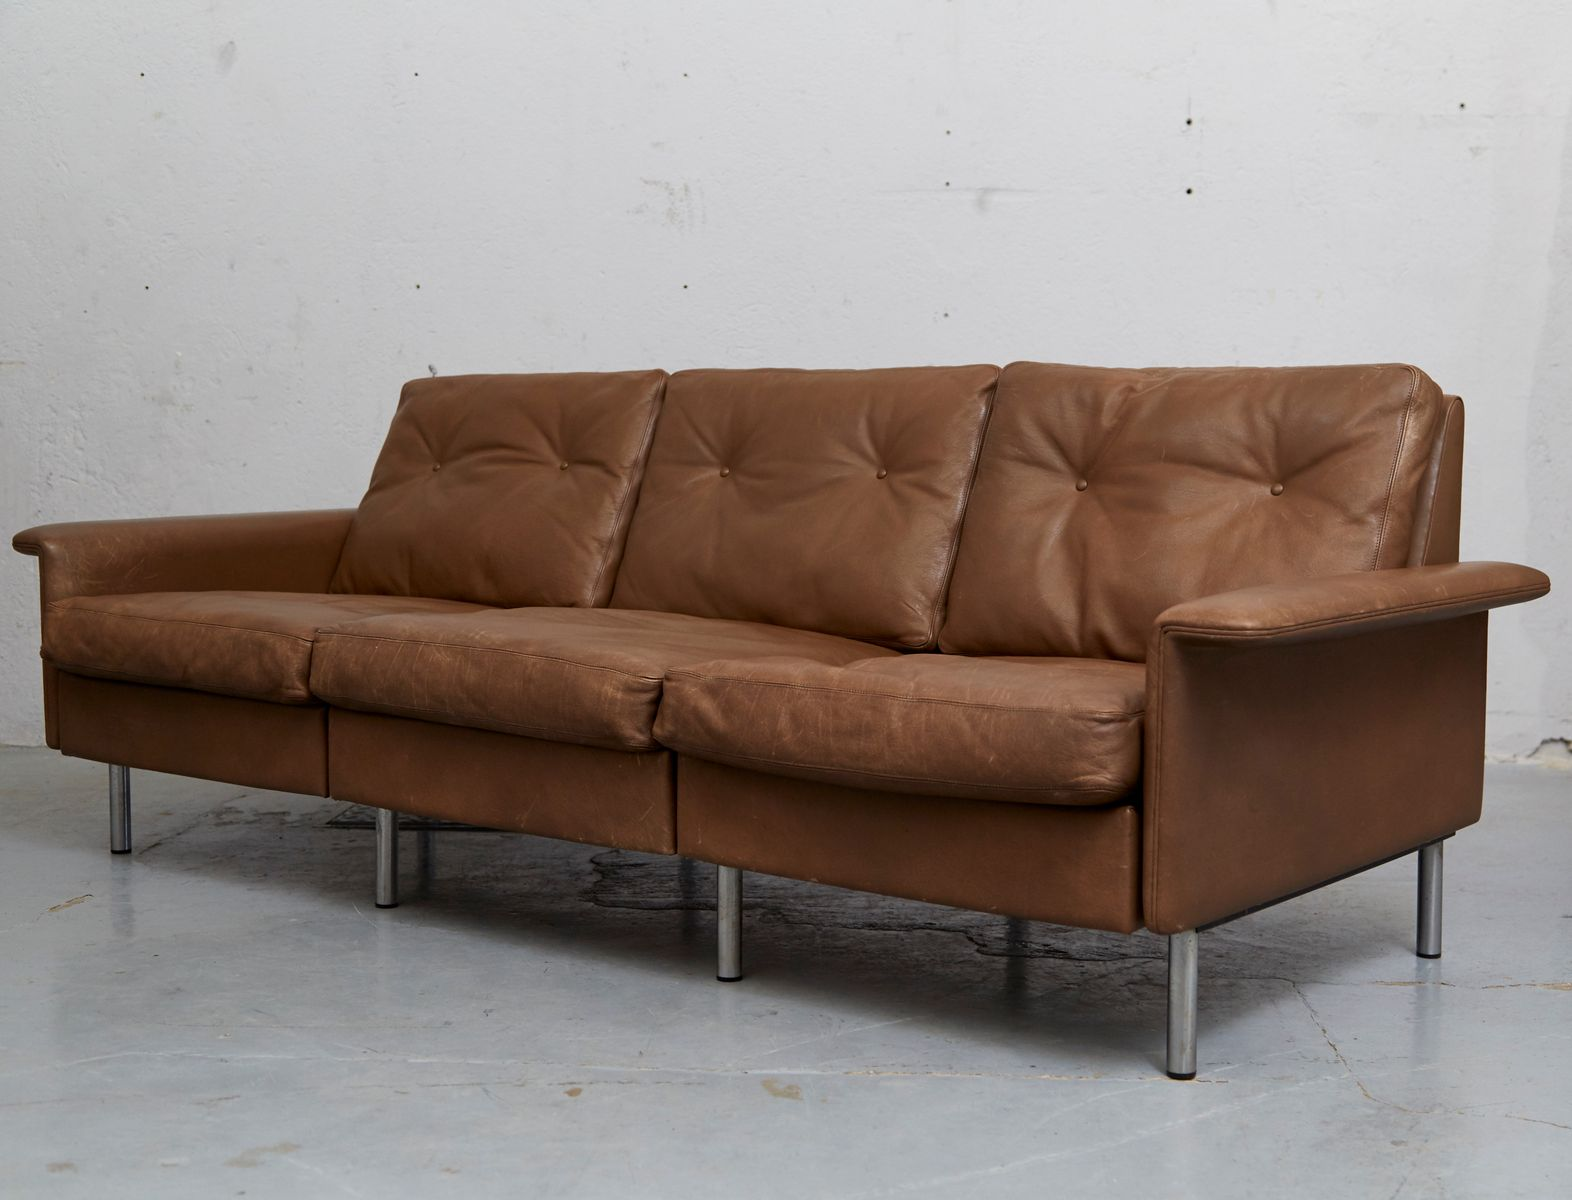 sedia sofa by horst br ning for cor 1966 for sale at pamono. Black Bedroom Furniture Sets. Home Design Ideas